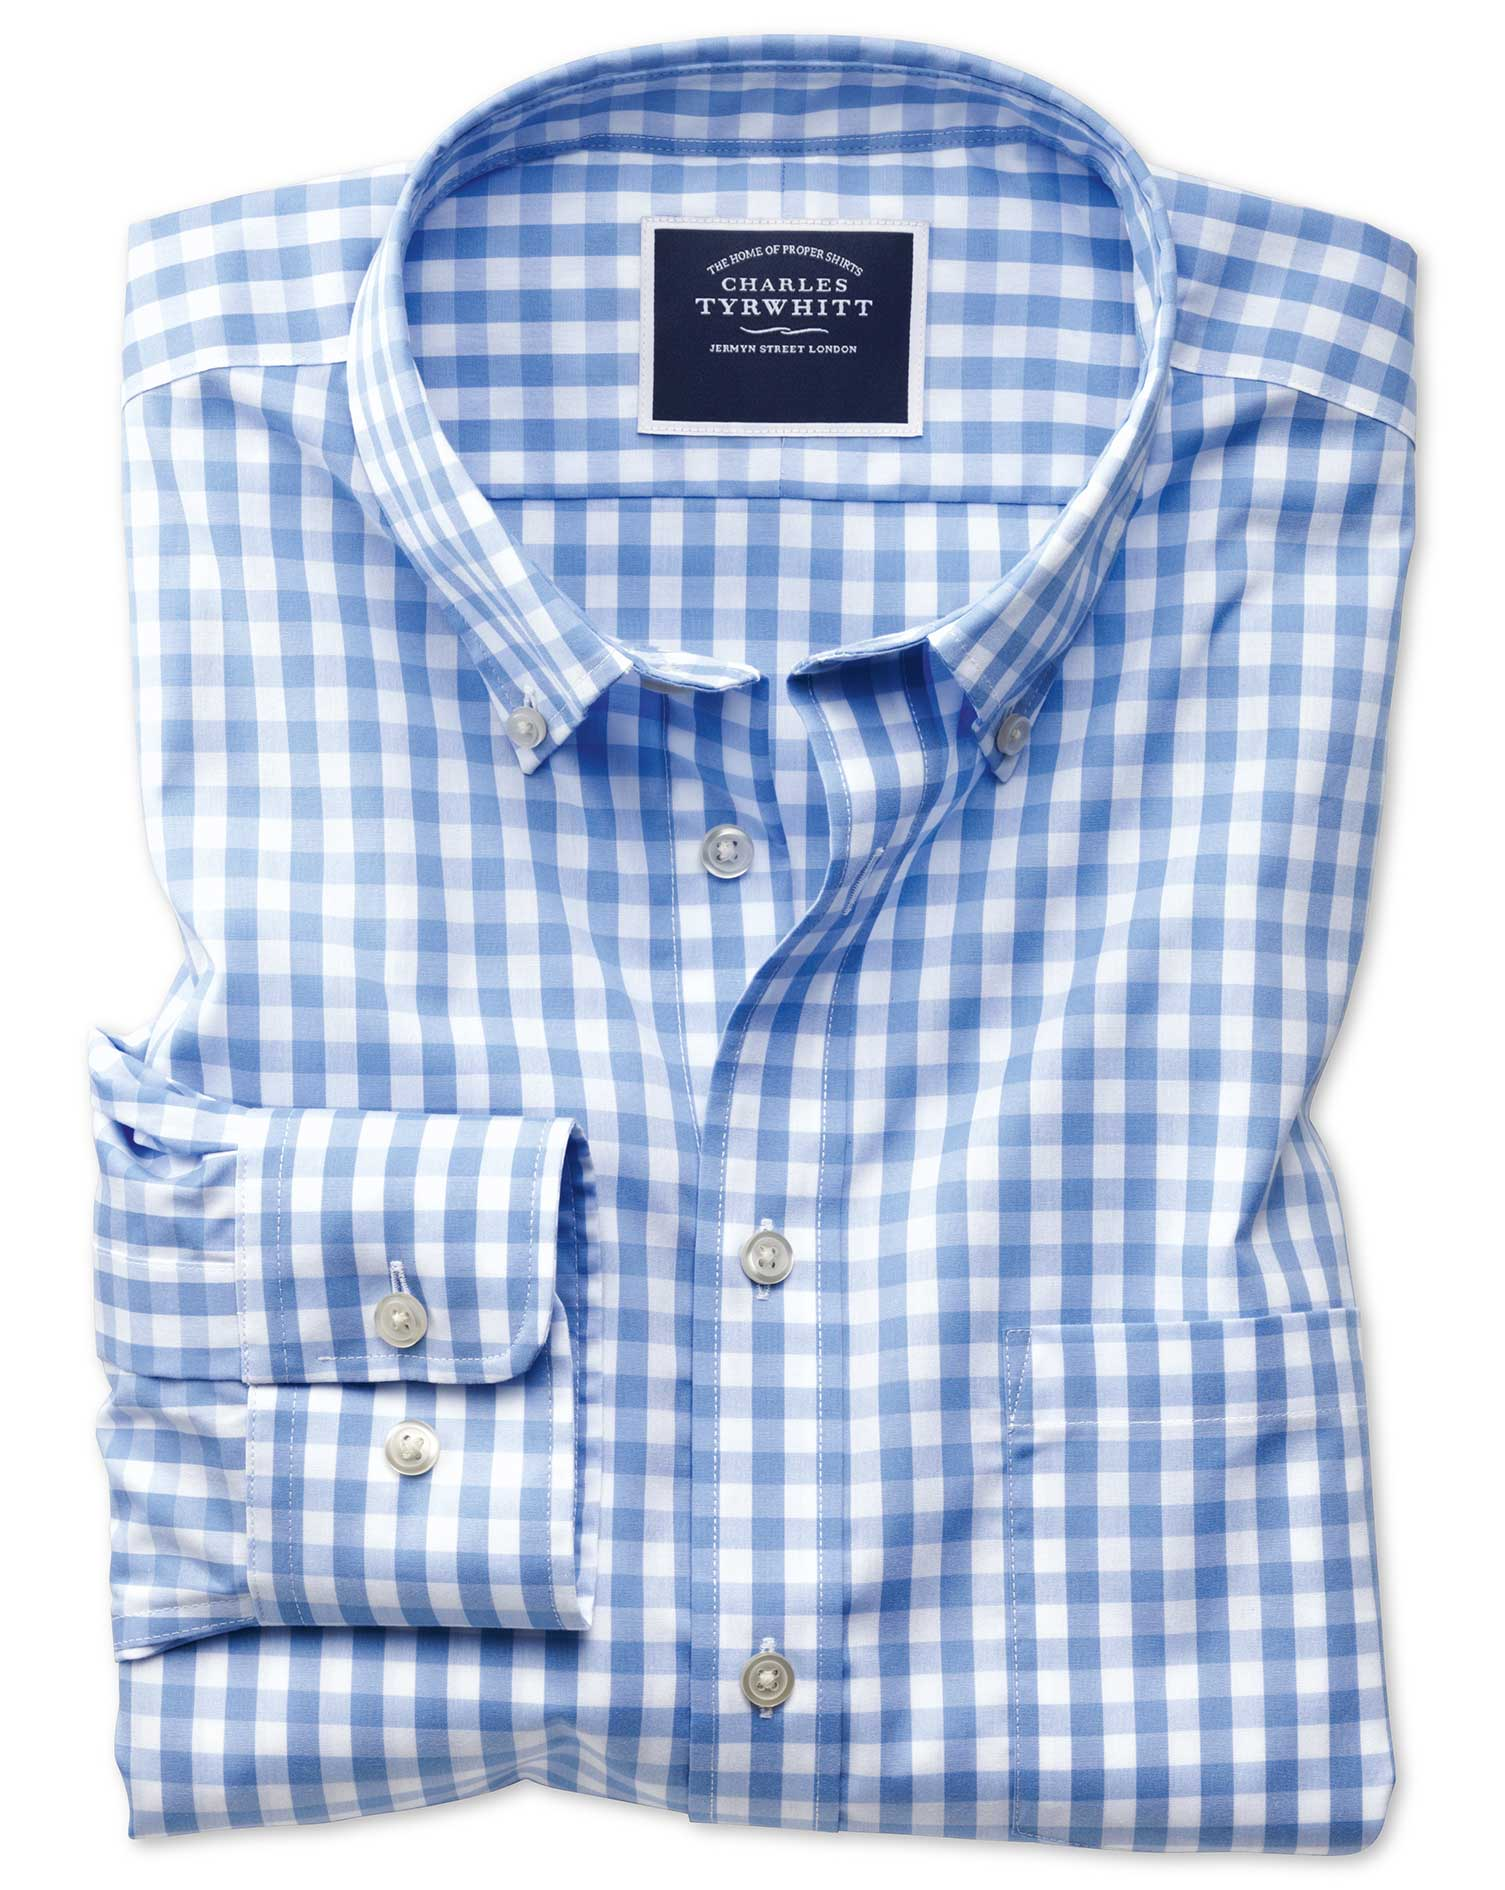 Slim Fit Button-Down Non-Iron Poplin Sky Blue Gingham Cotton Shirt Single Cuff Size Small by Charles